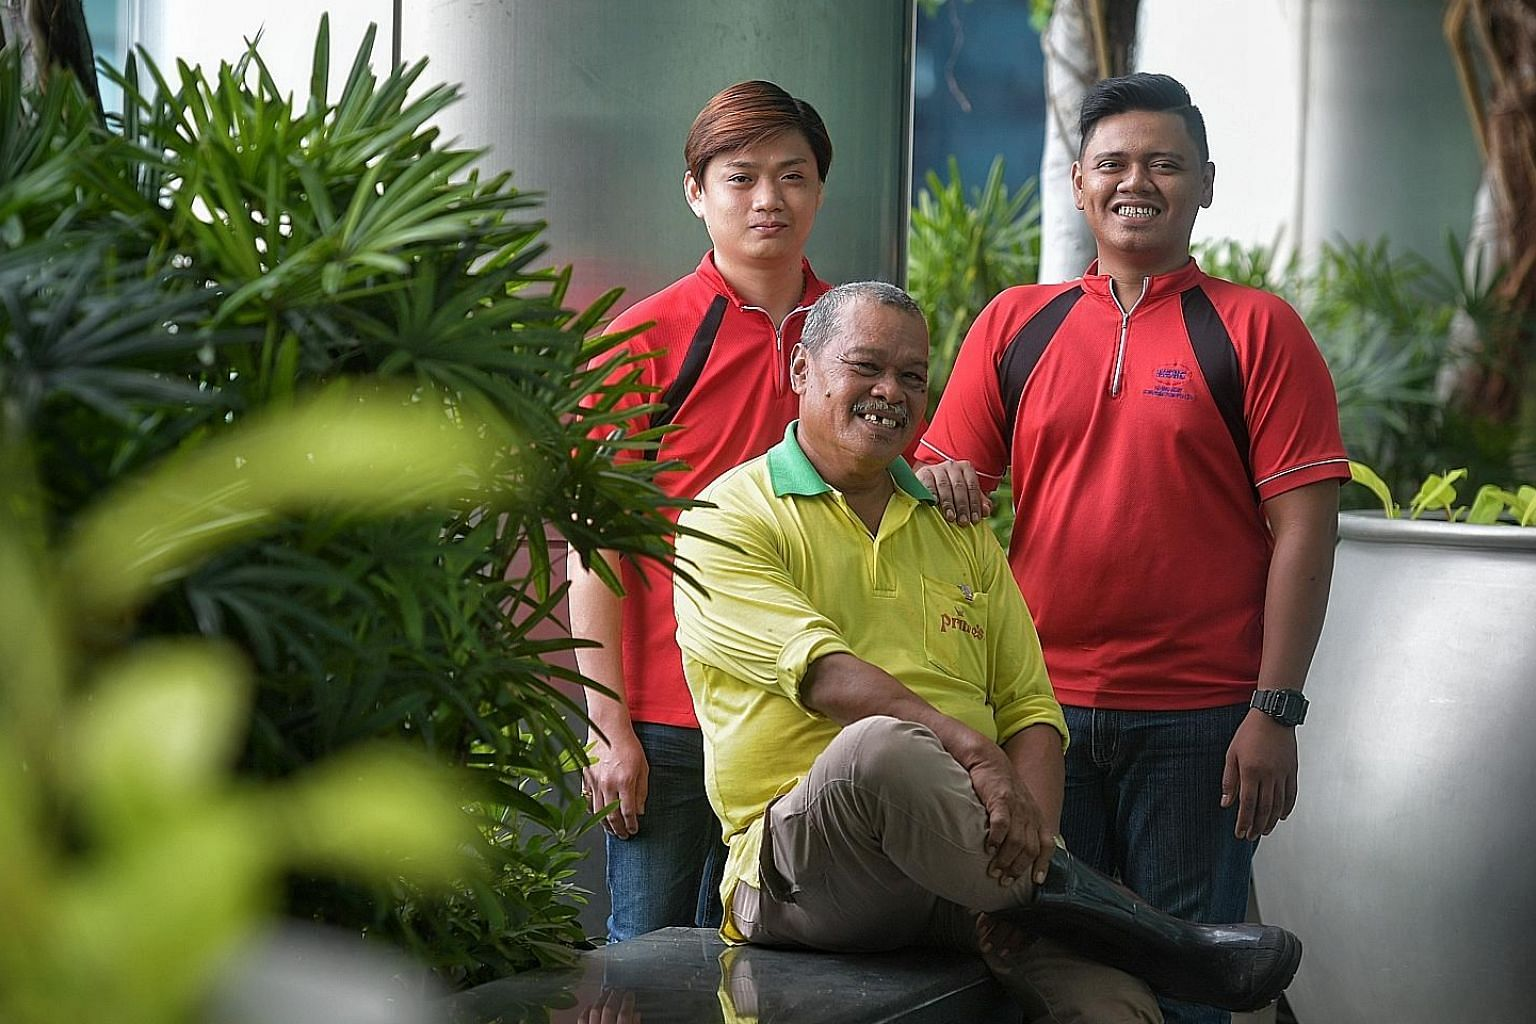 Landscape technician Md Yasin Ithnin (centre) from Prince's Landscape and Construction has seen his basic pay rise from $1,300 to $1,550 now. With him are Mr Jarren Teo, assistant landscape supervisor, and Mr Muhammad Ridduan Sarman, landscape techni